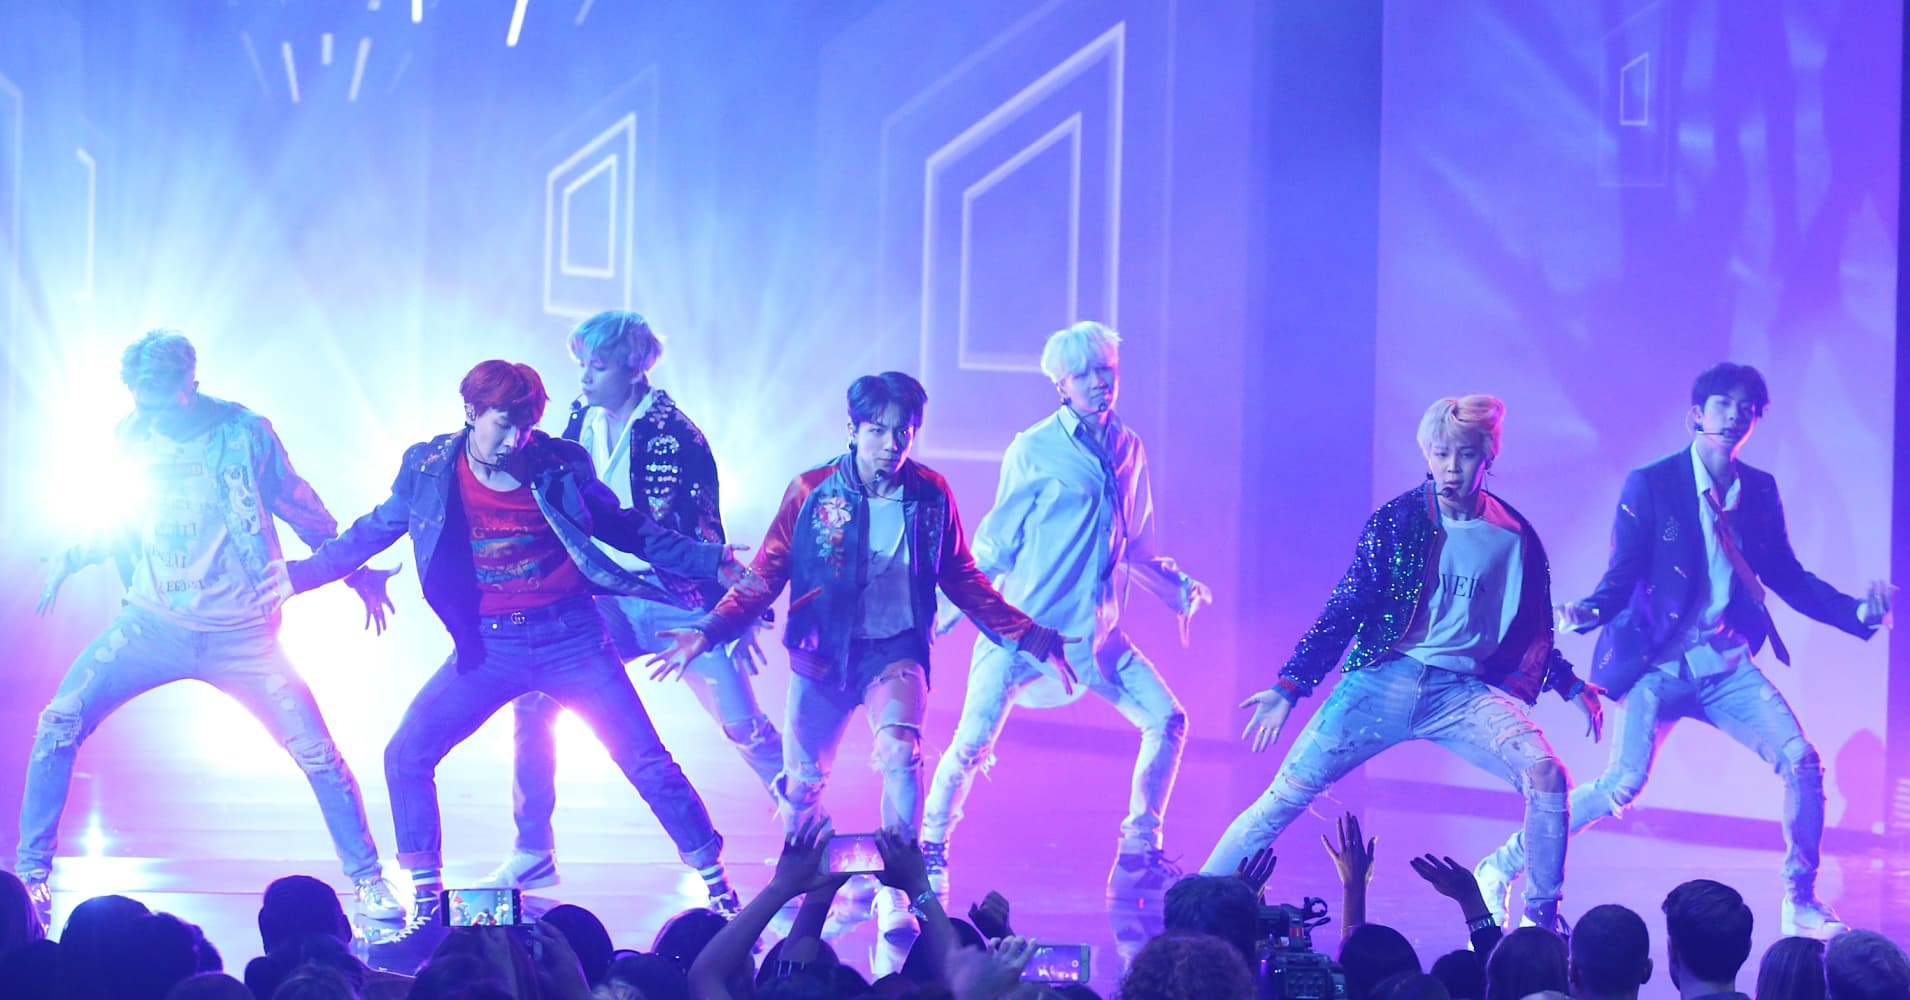 BTS performs 'DNA' onstage during the 2017 American Music Awards held at Microsoft Theater on November 19, 2017 in Los Angeles, California.